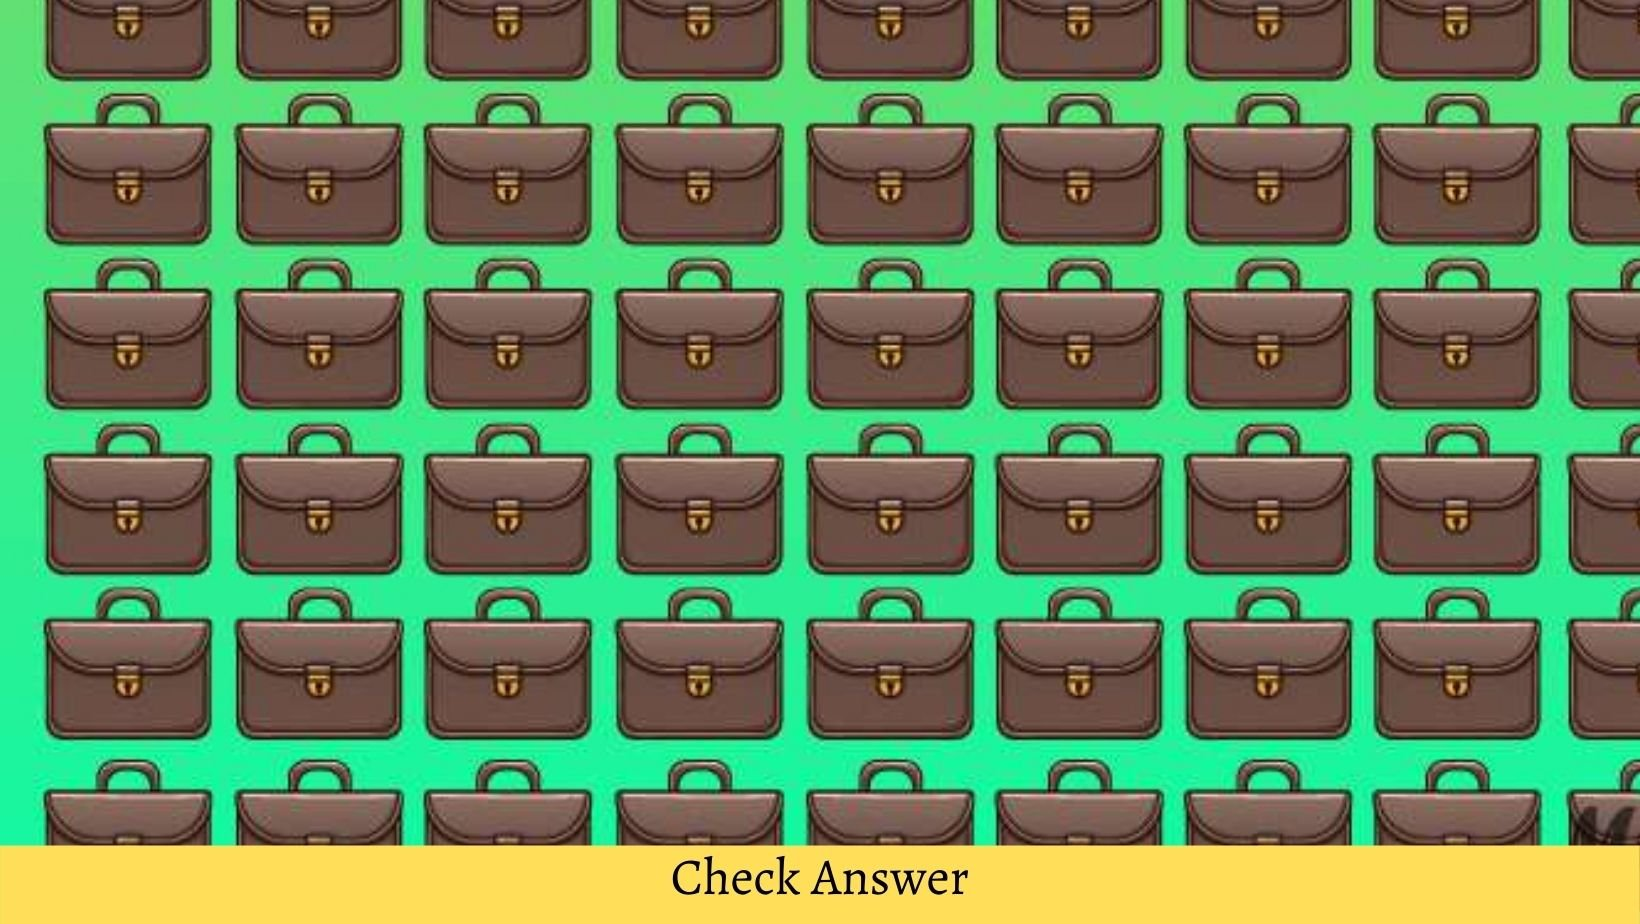 cover 17.jpg?resize=1200,630 - There Is ONE ODD BRIEFCASE In This Image, Can You Find It In A Minute?